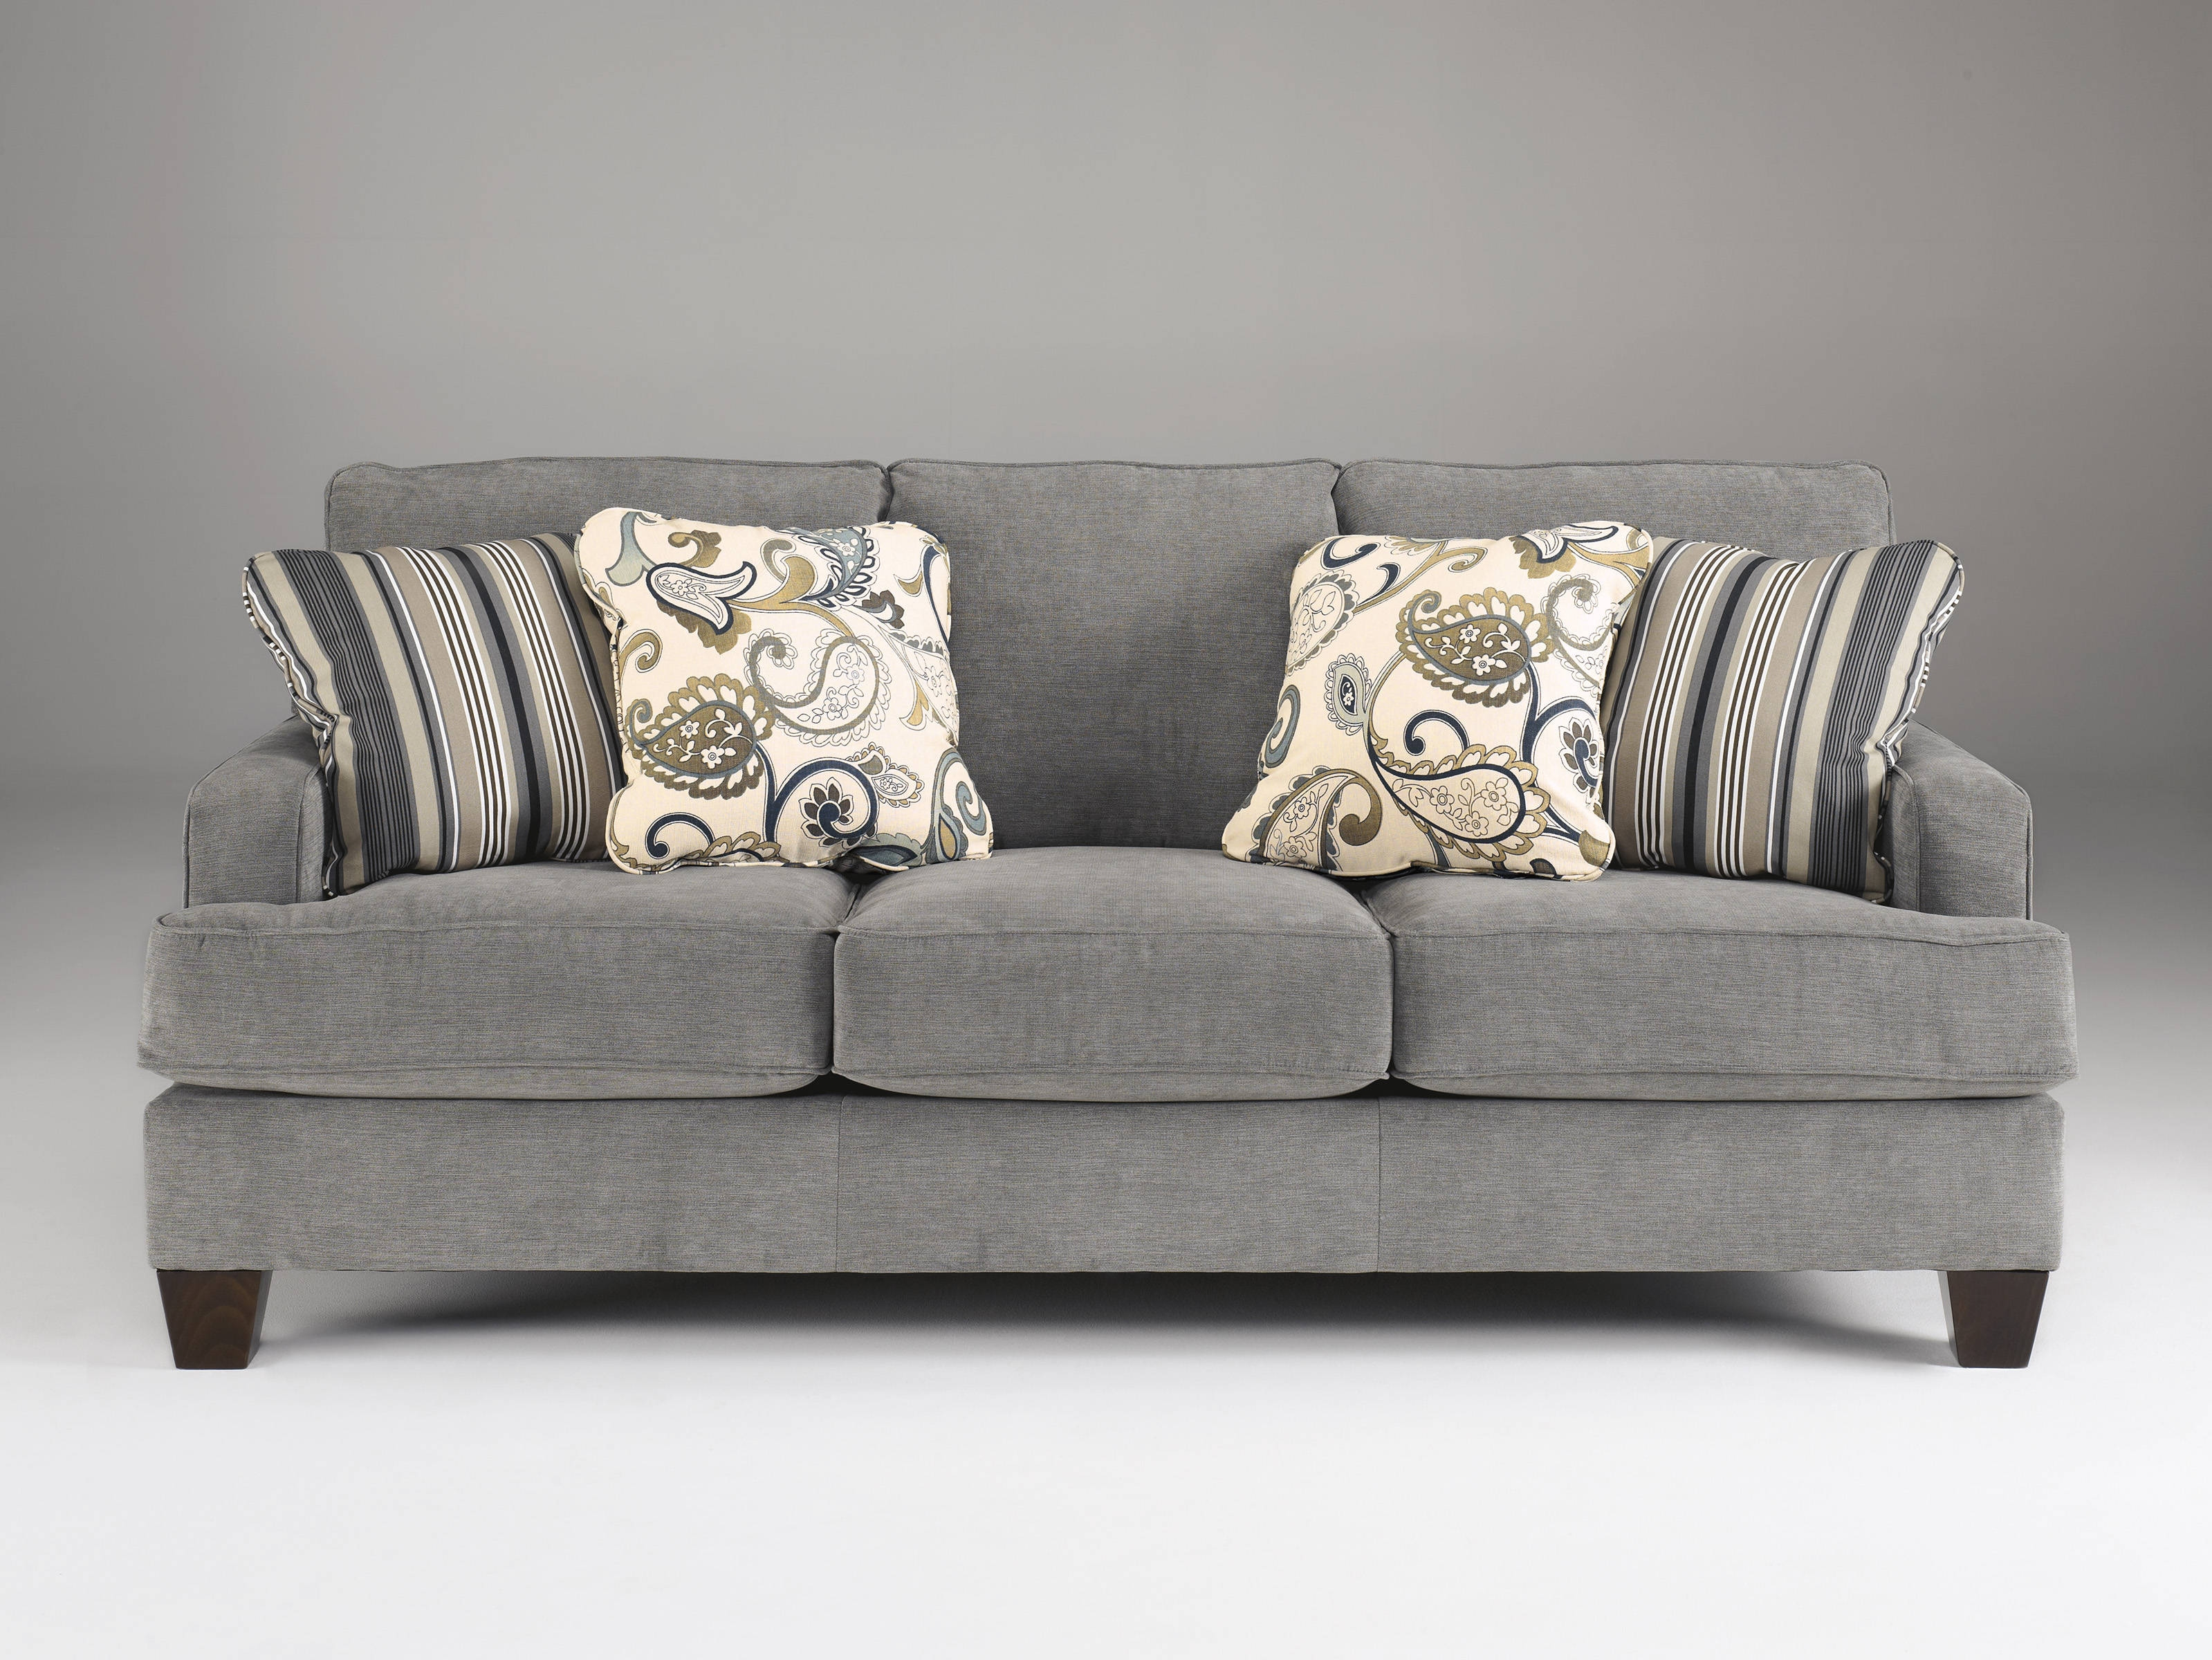 Yvette Casual Steel Gray Fabric Cushion Back Sofa Living Rooms Inside Ashley Furniture Gray Sofa (View 10 of 12)